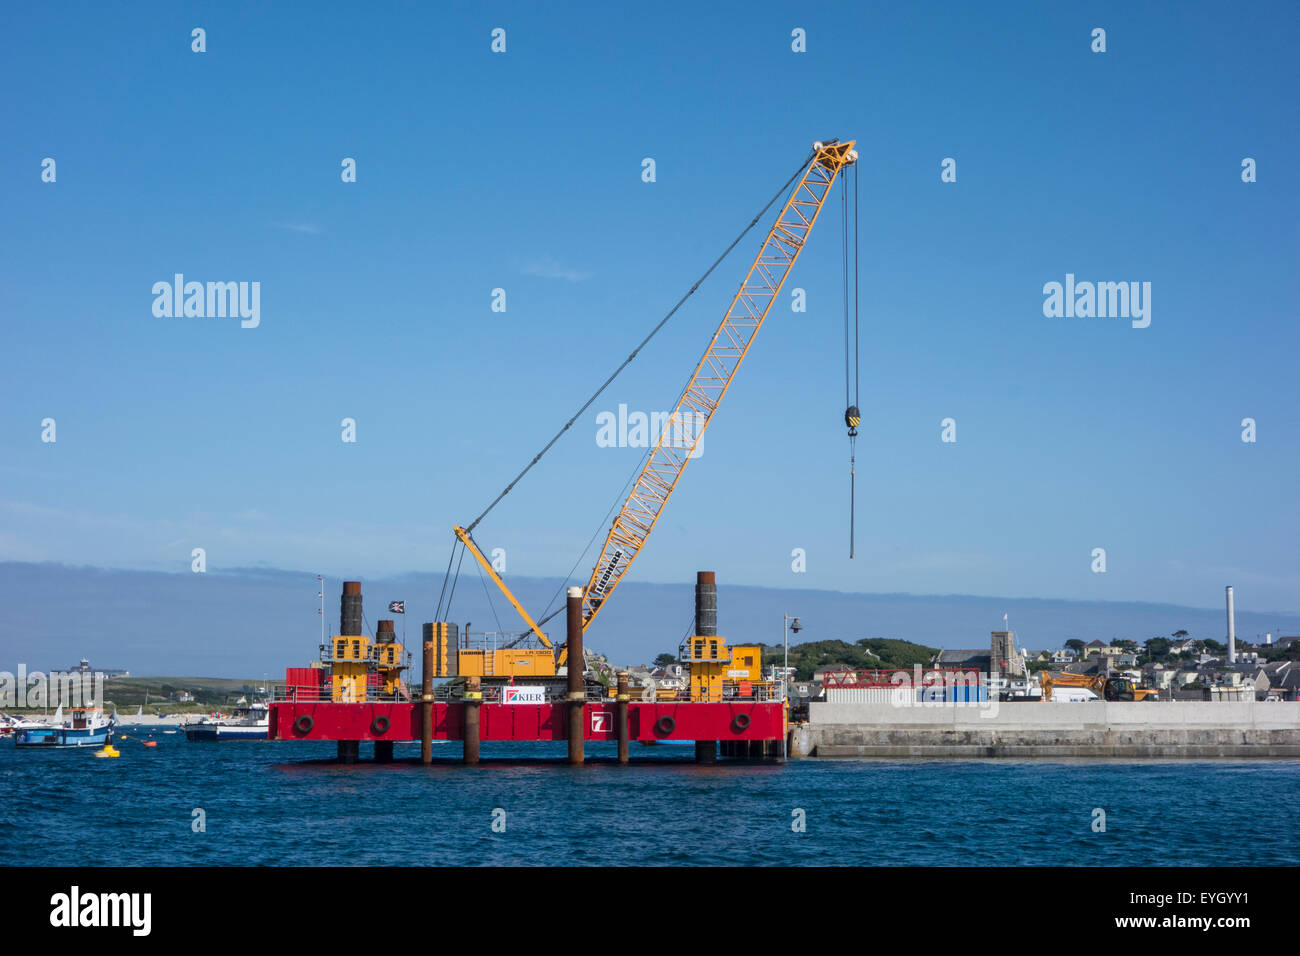 Construction work, involving a crane, to lengthen the harbour wall on St Mary's, Isles of Scilly, Cornwall - Stock Image